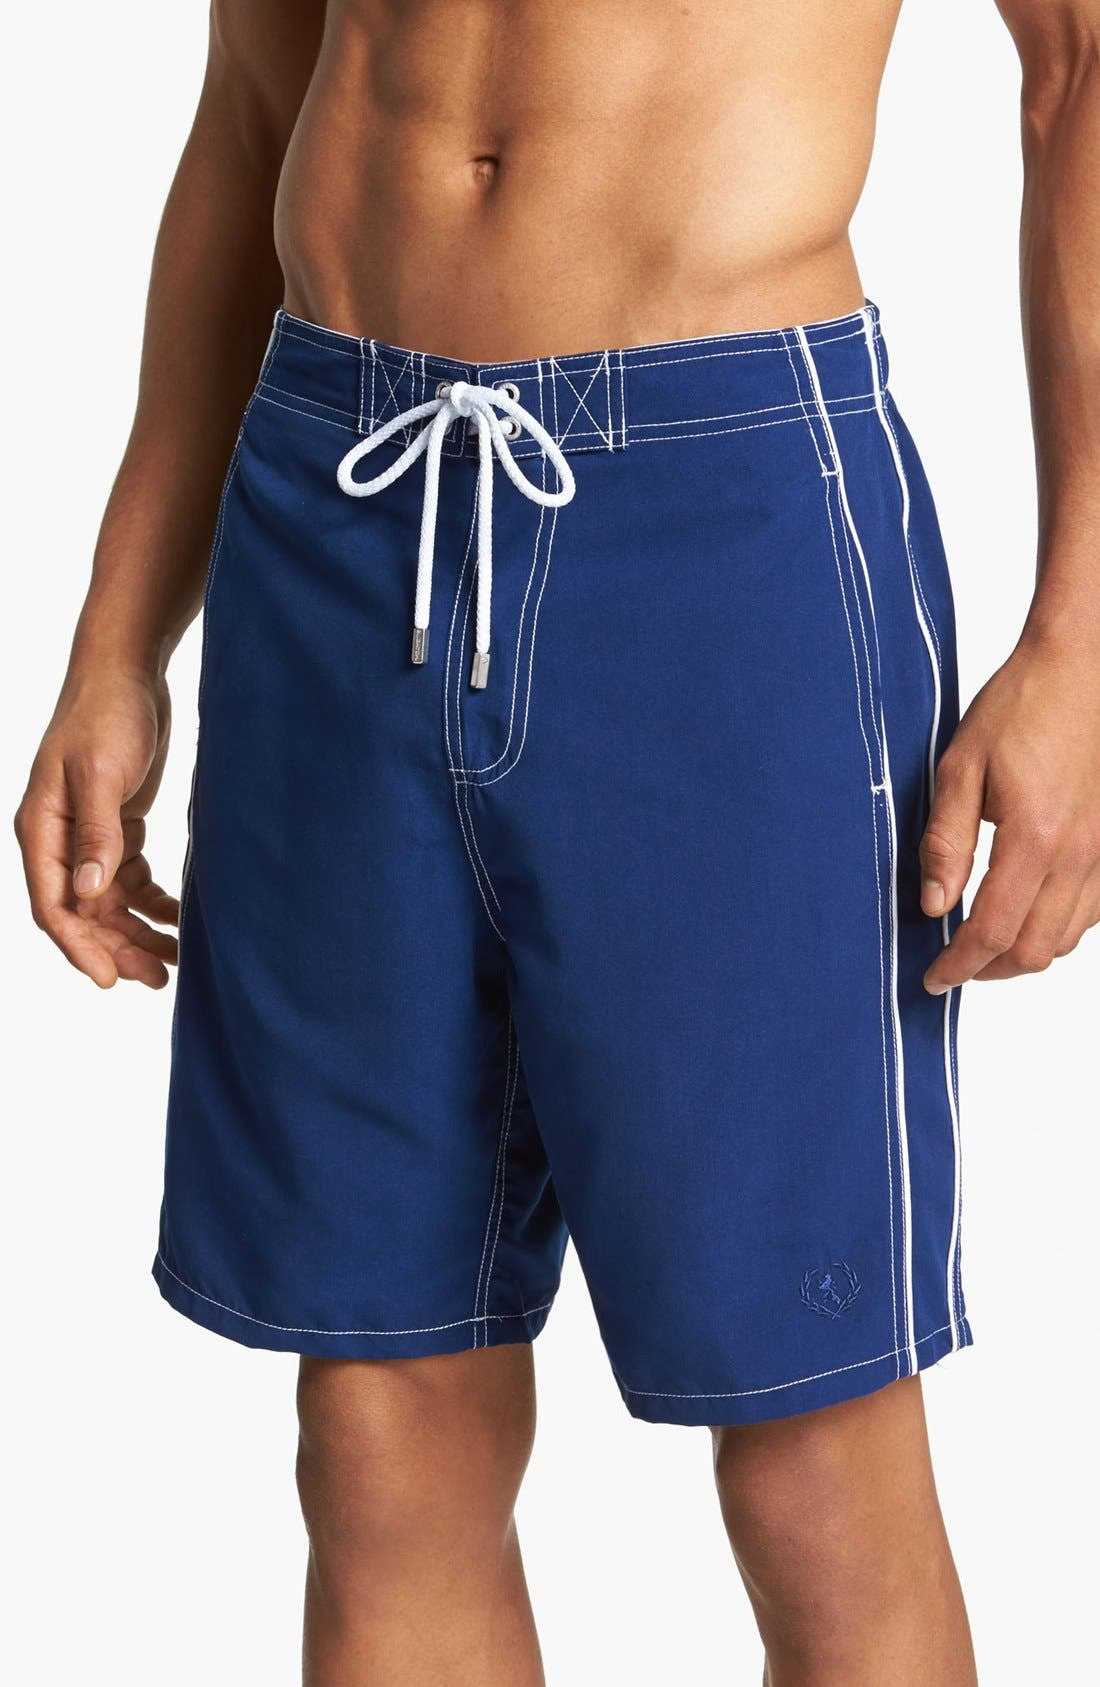 Alternate Image 1 Selected - Bugatchi Swim Trunks